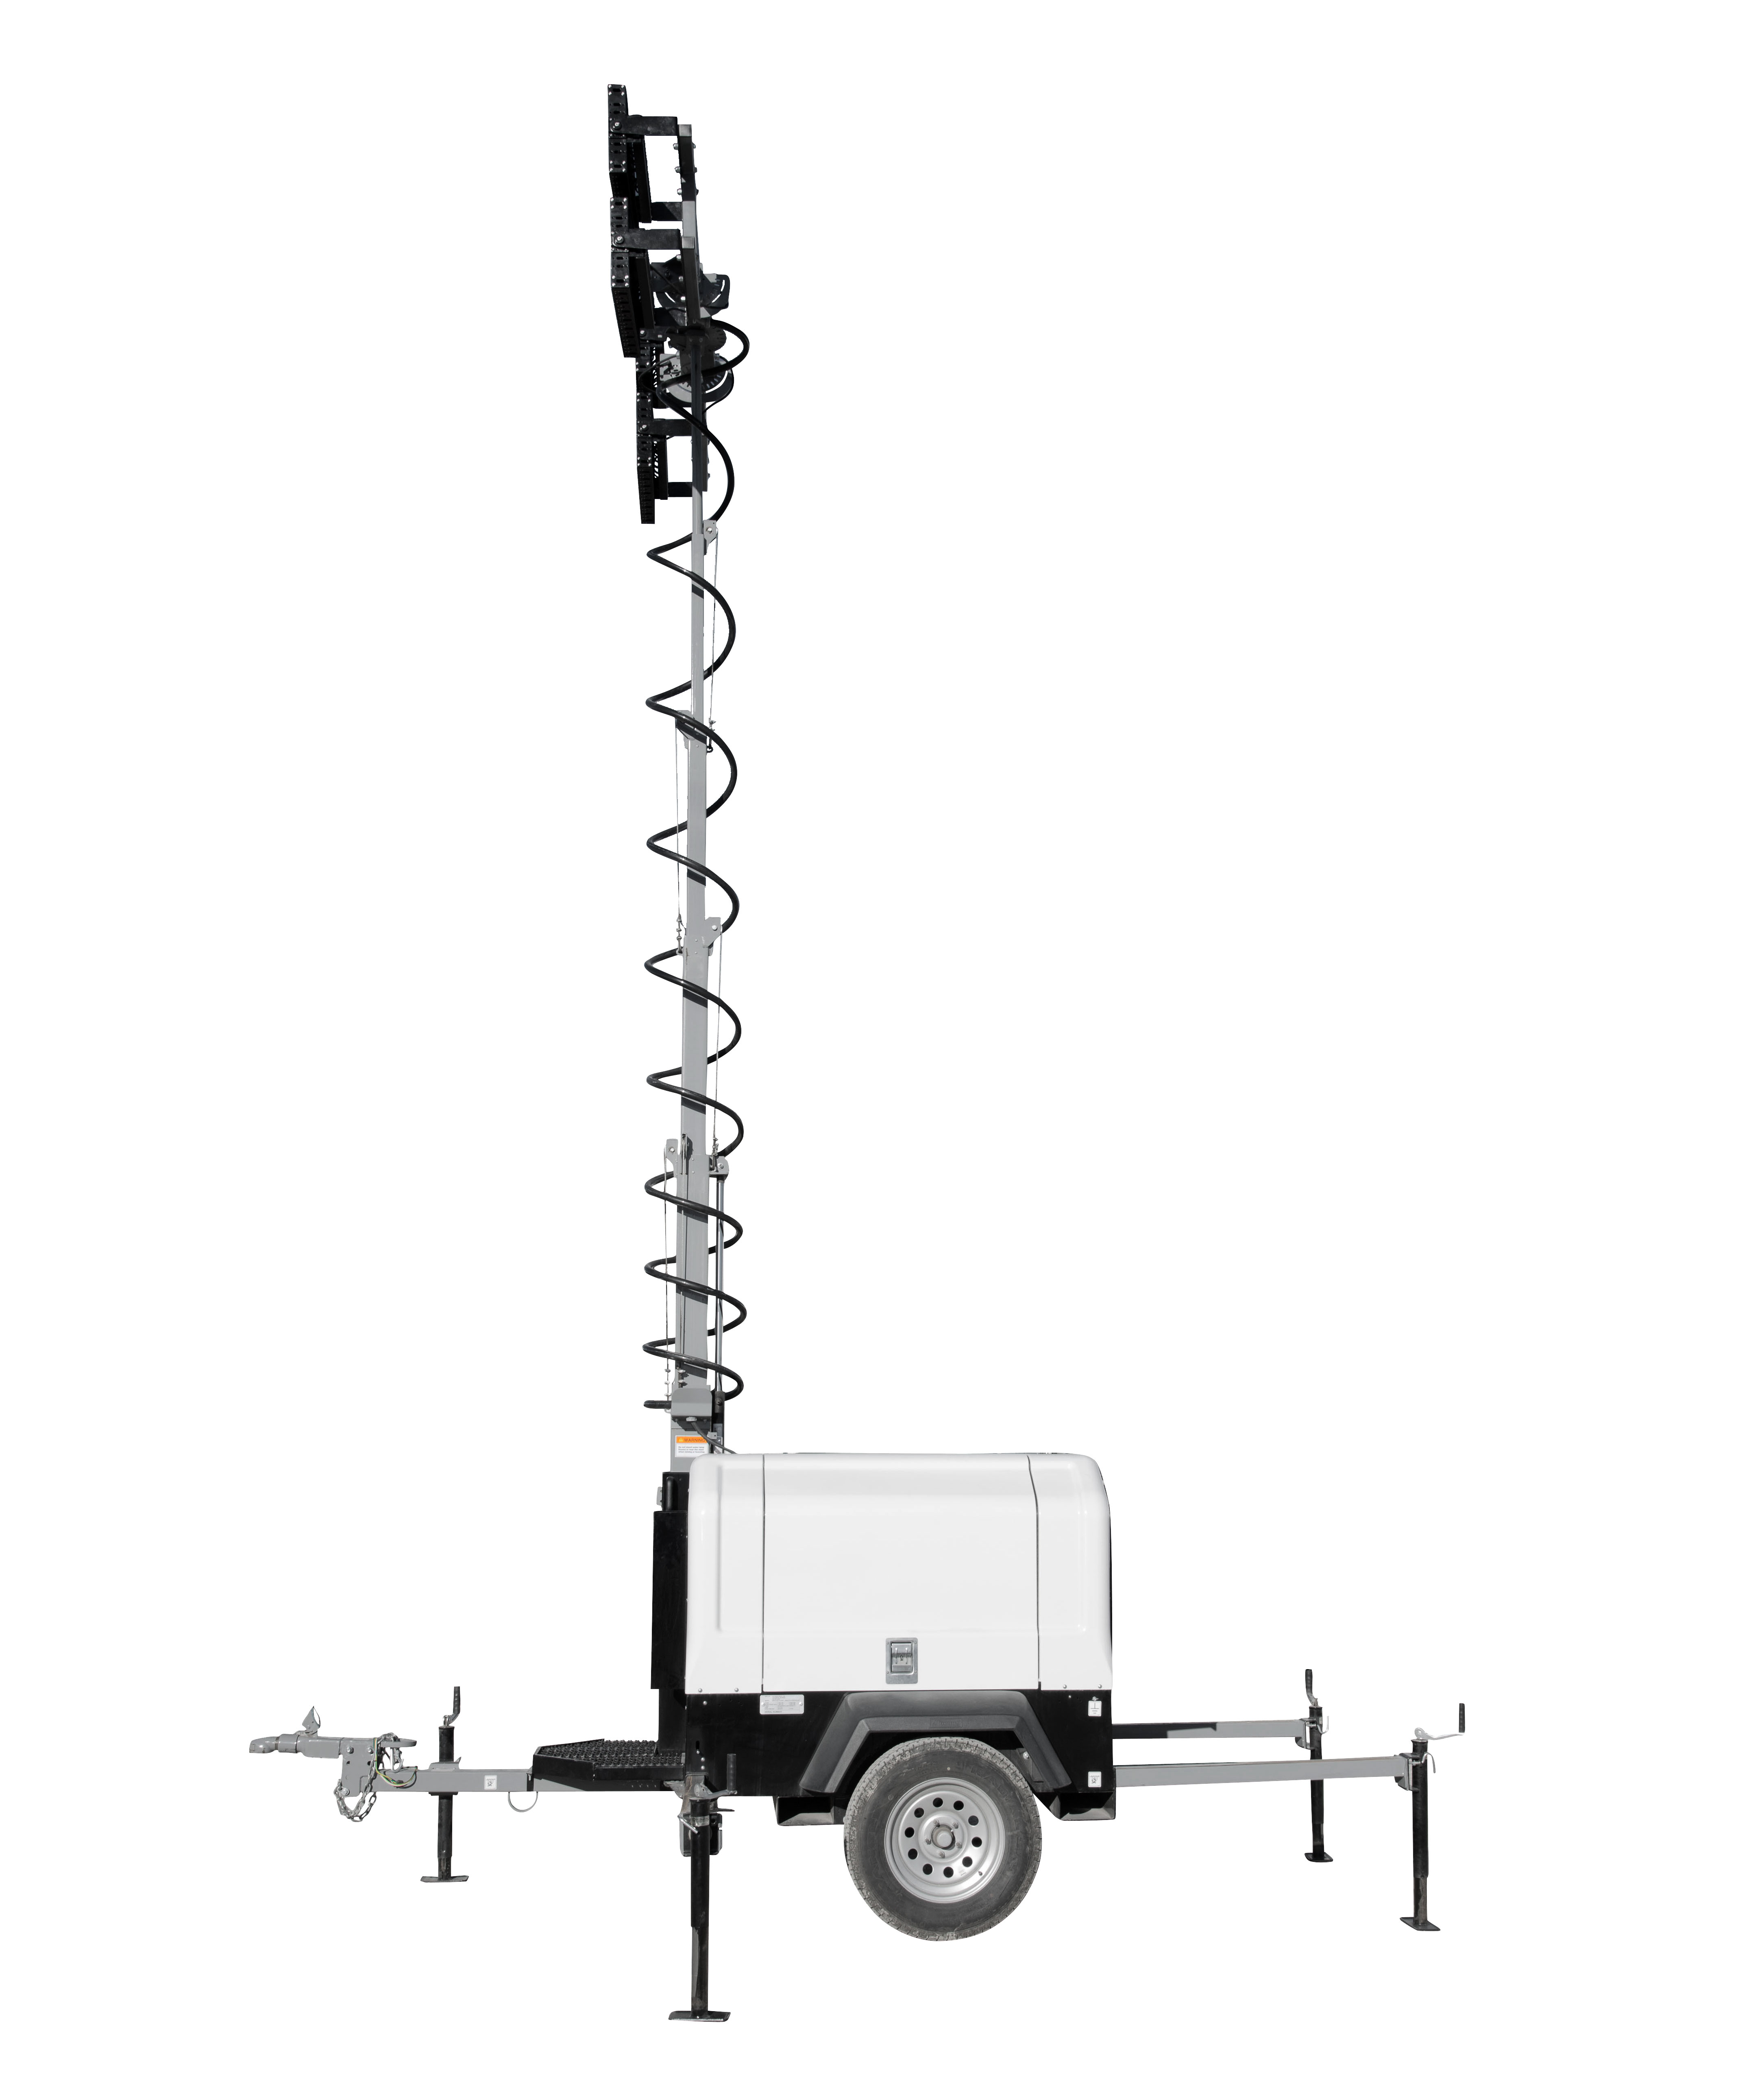 Larson Electronics Releases Mobile Light Tower With Diesel